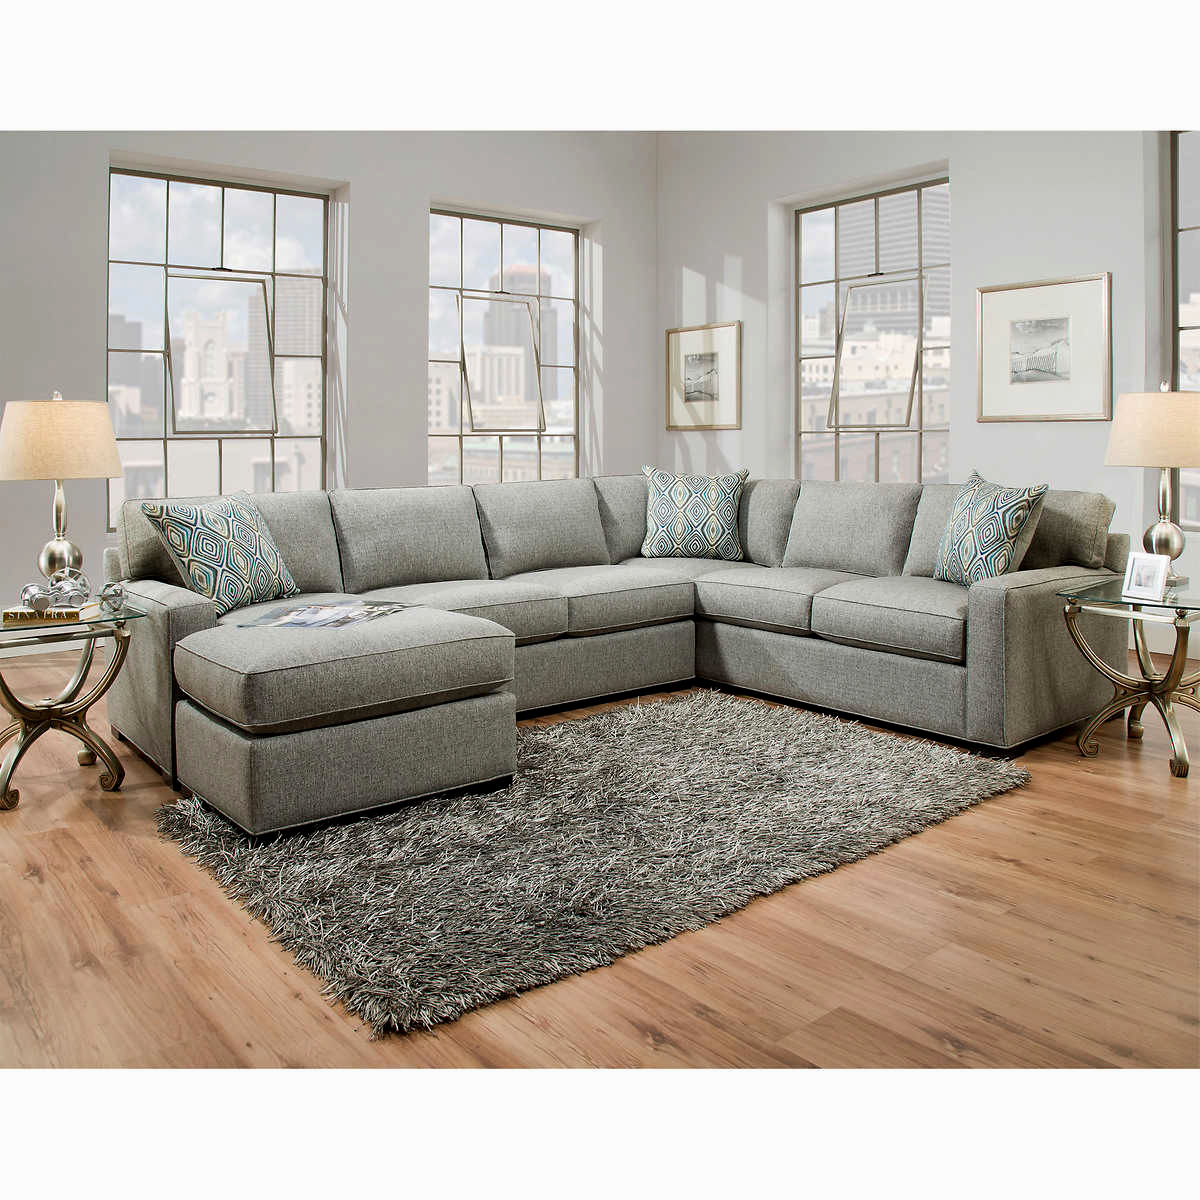 Best Of Costco Furniture Sofas Wallpaper